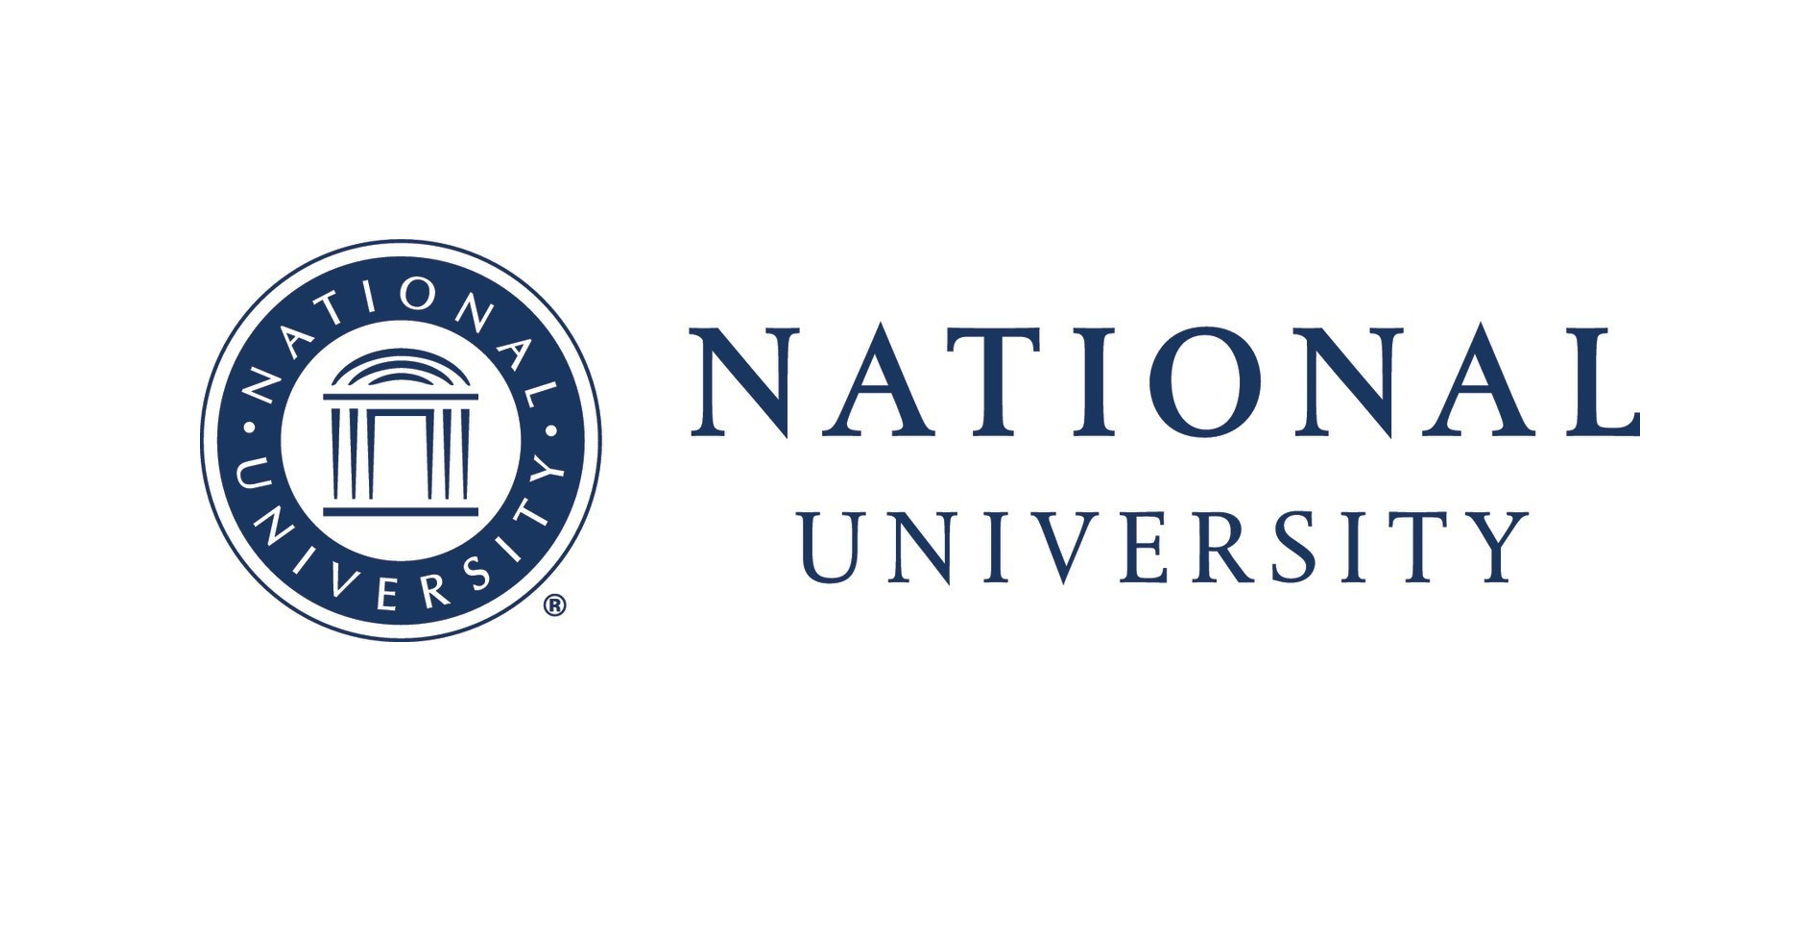 National University Saves Students $25 Million and 14,500 Courses